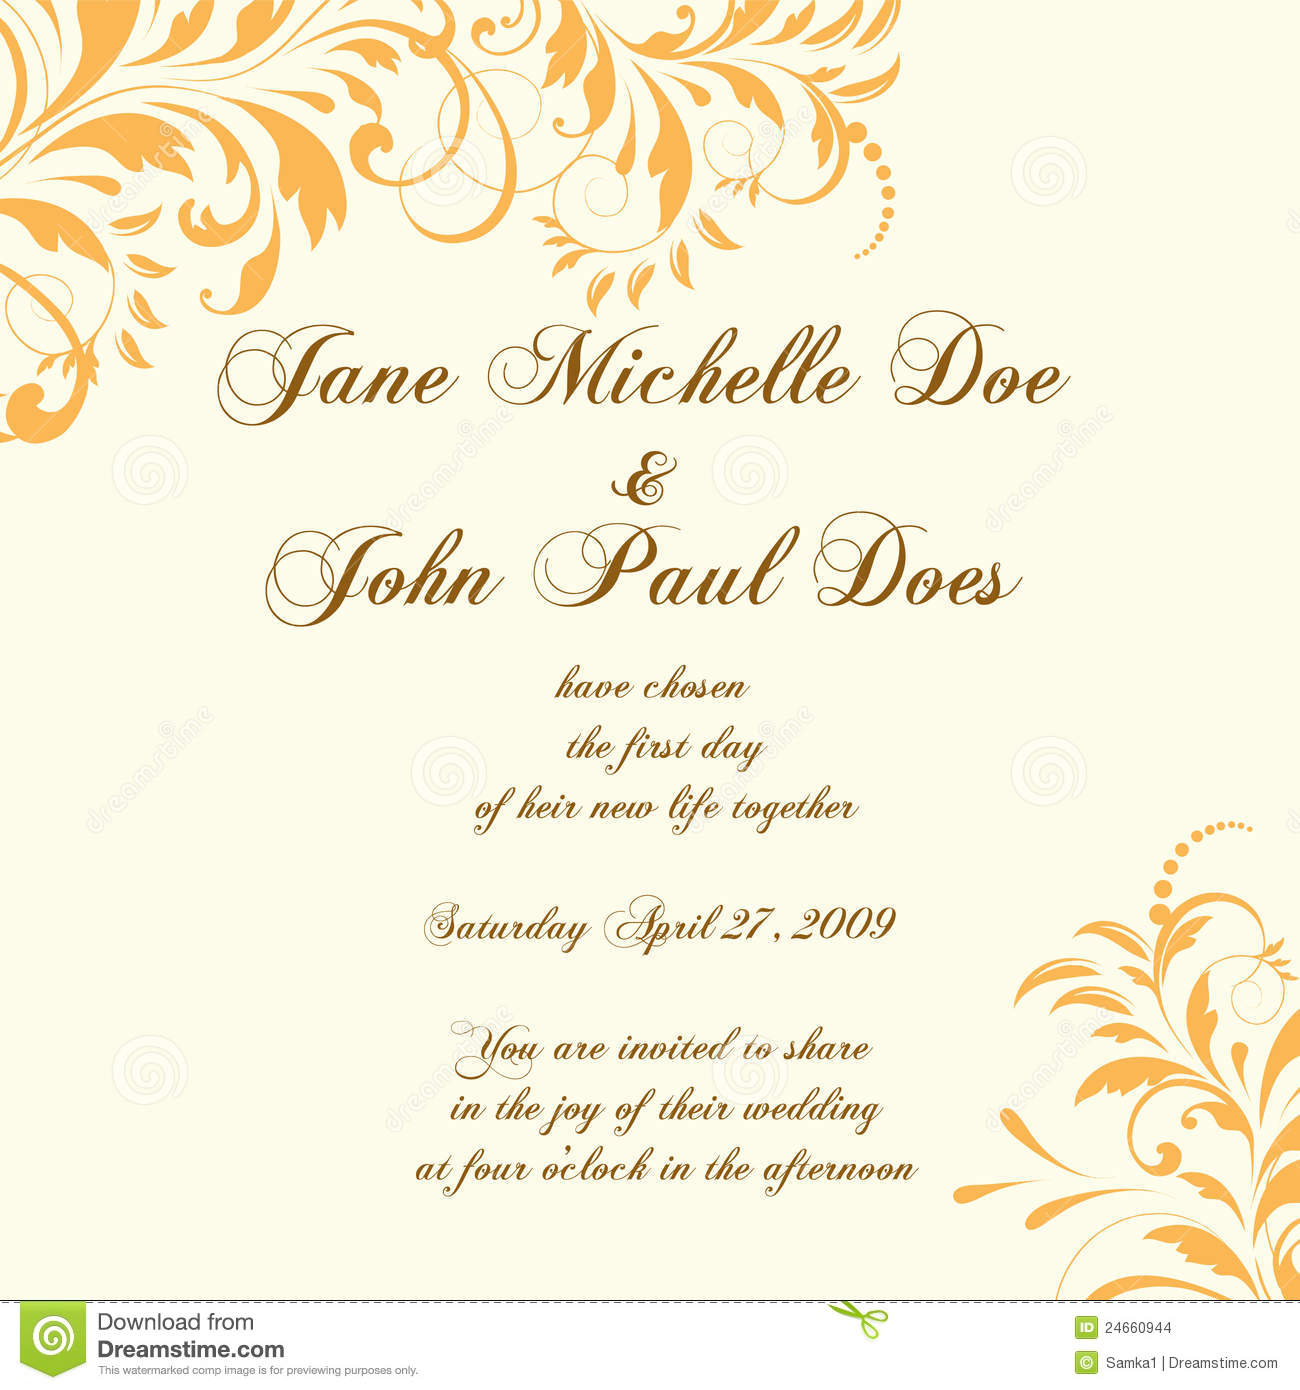 Wedding Invitation Card Photos Images Pictures 187752 – Wedding Card Invitations